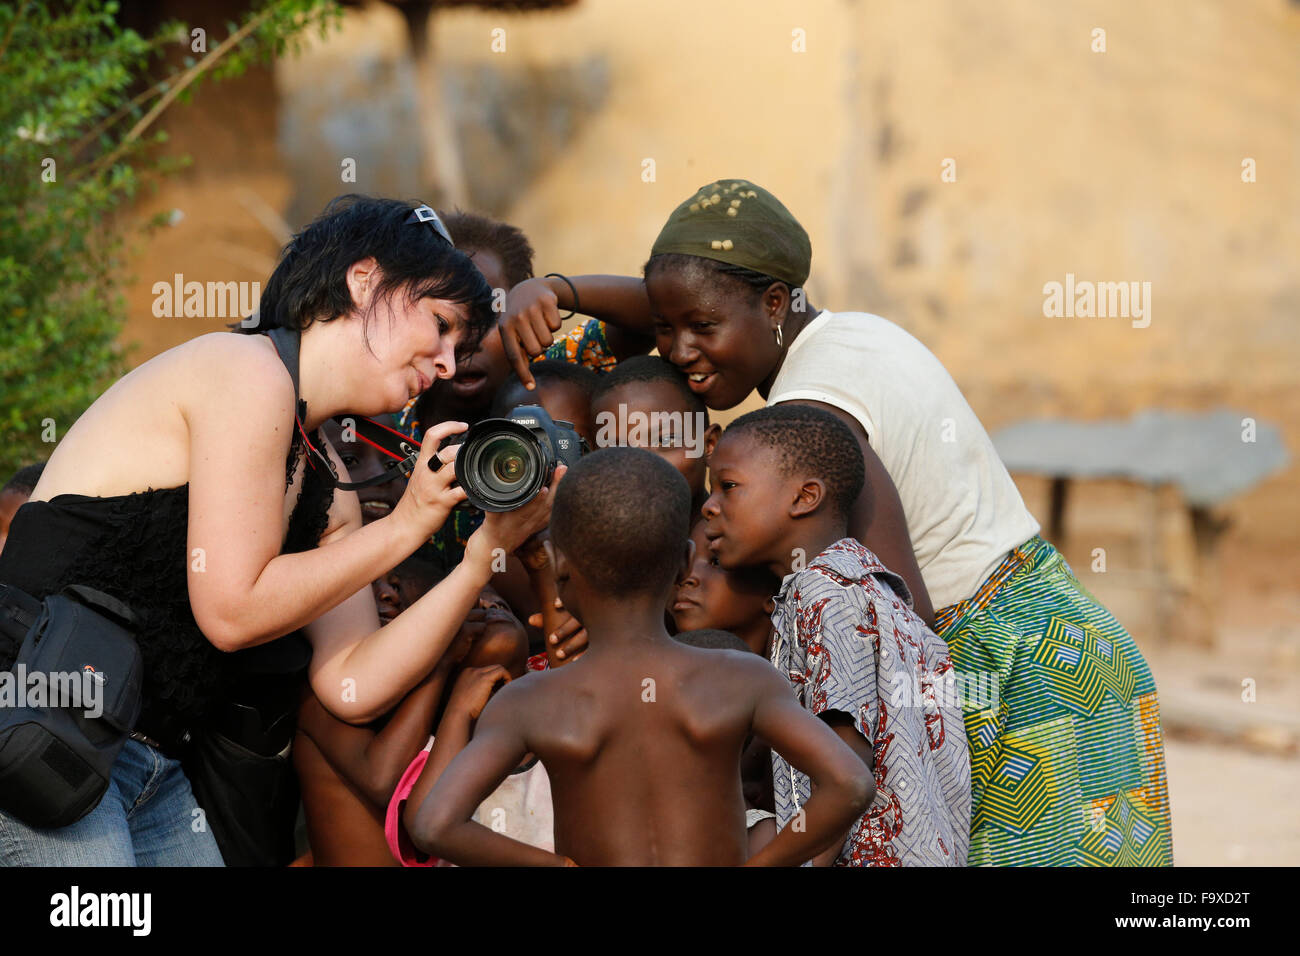 Tourism in an African village. - Stock Image